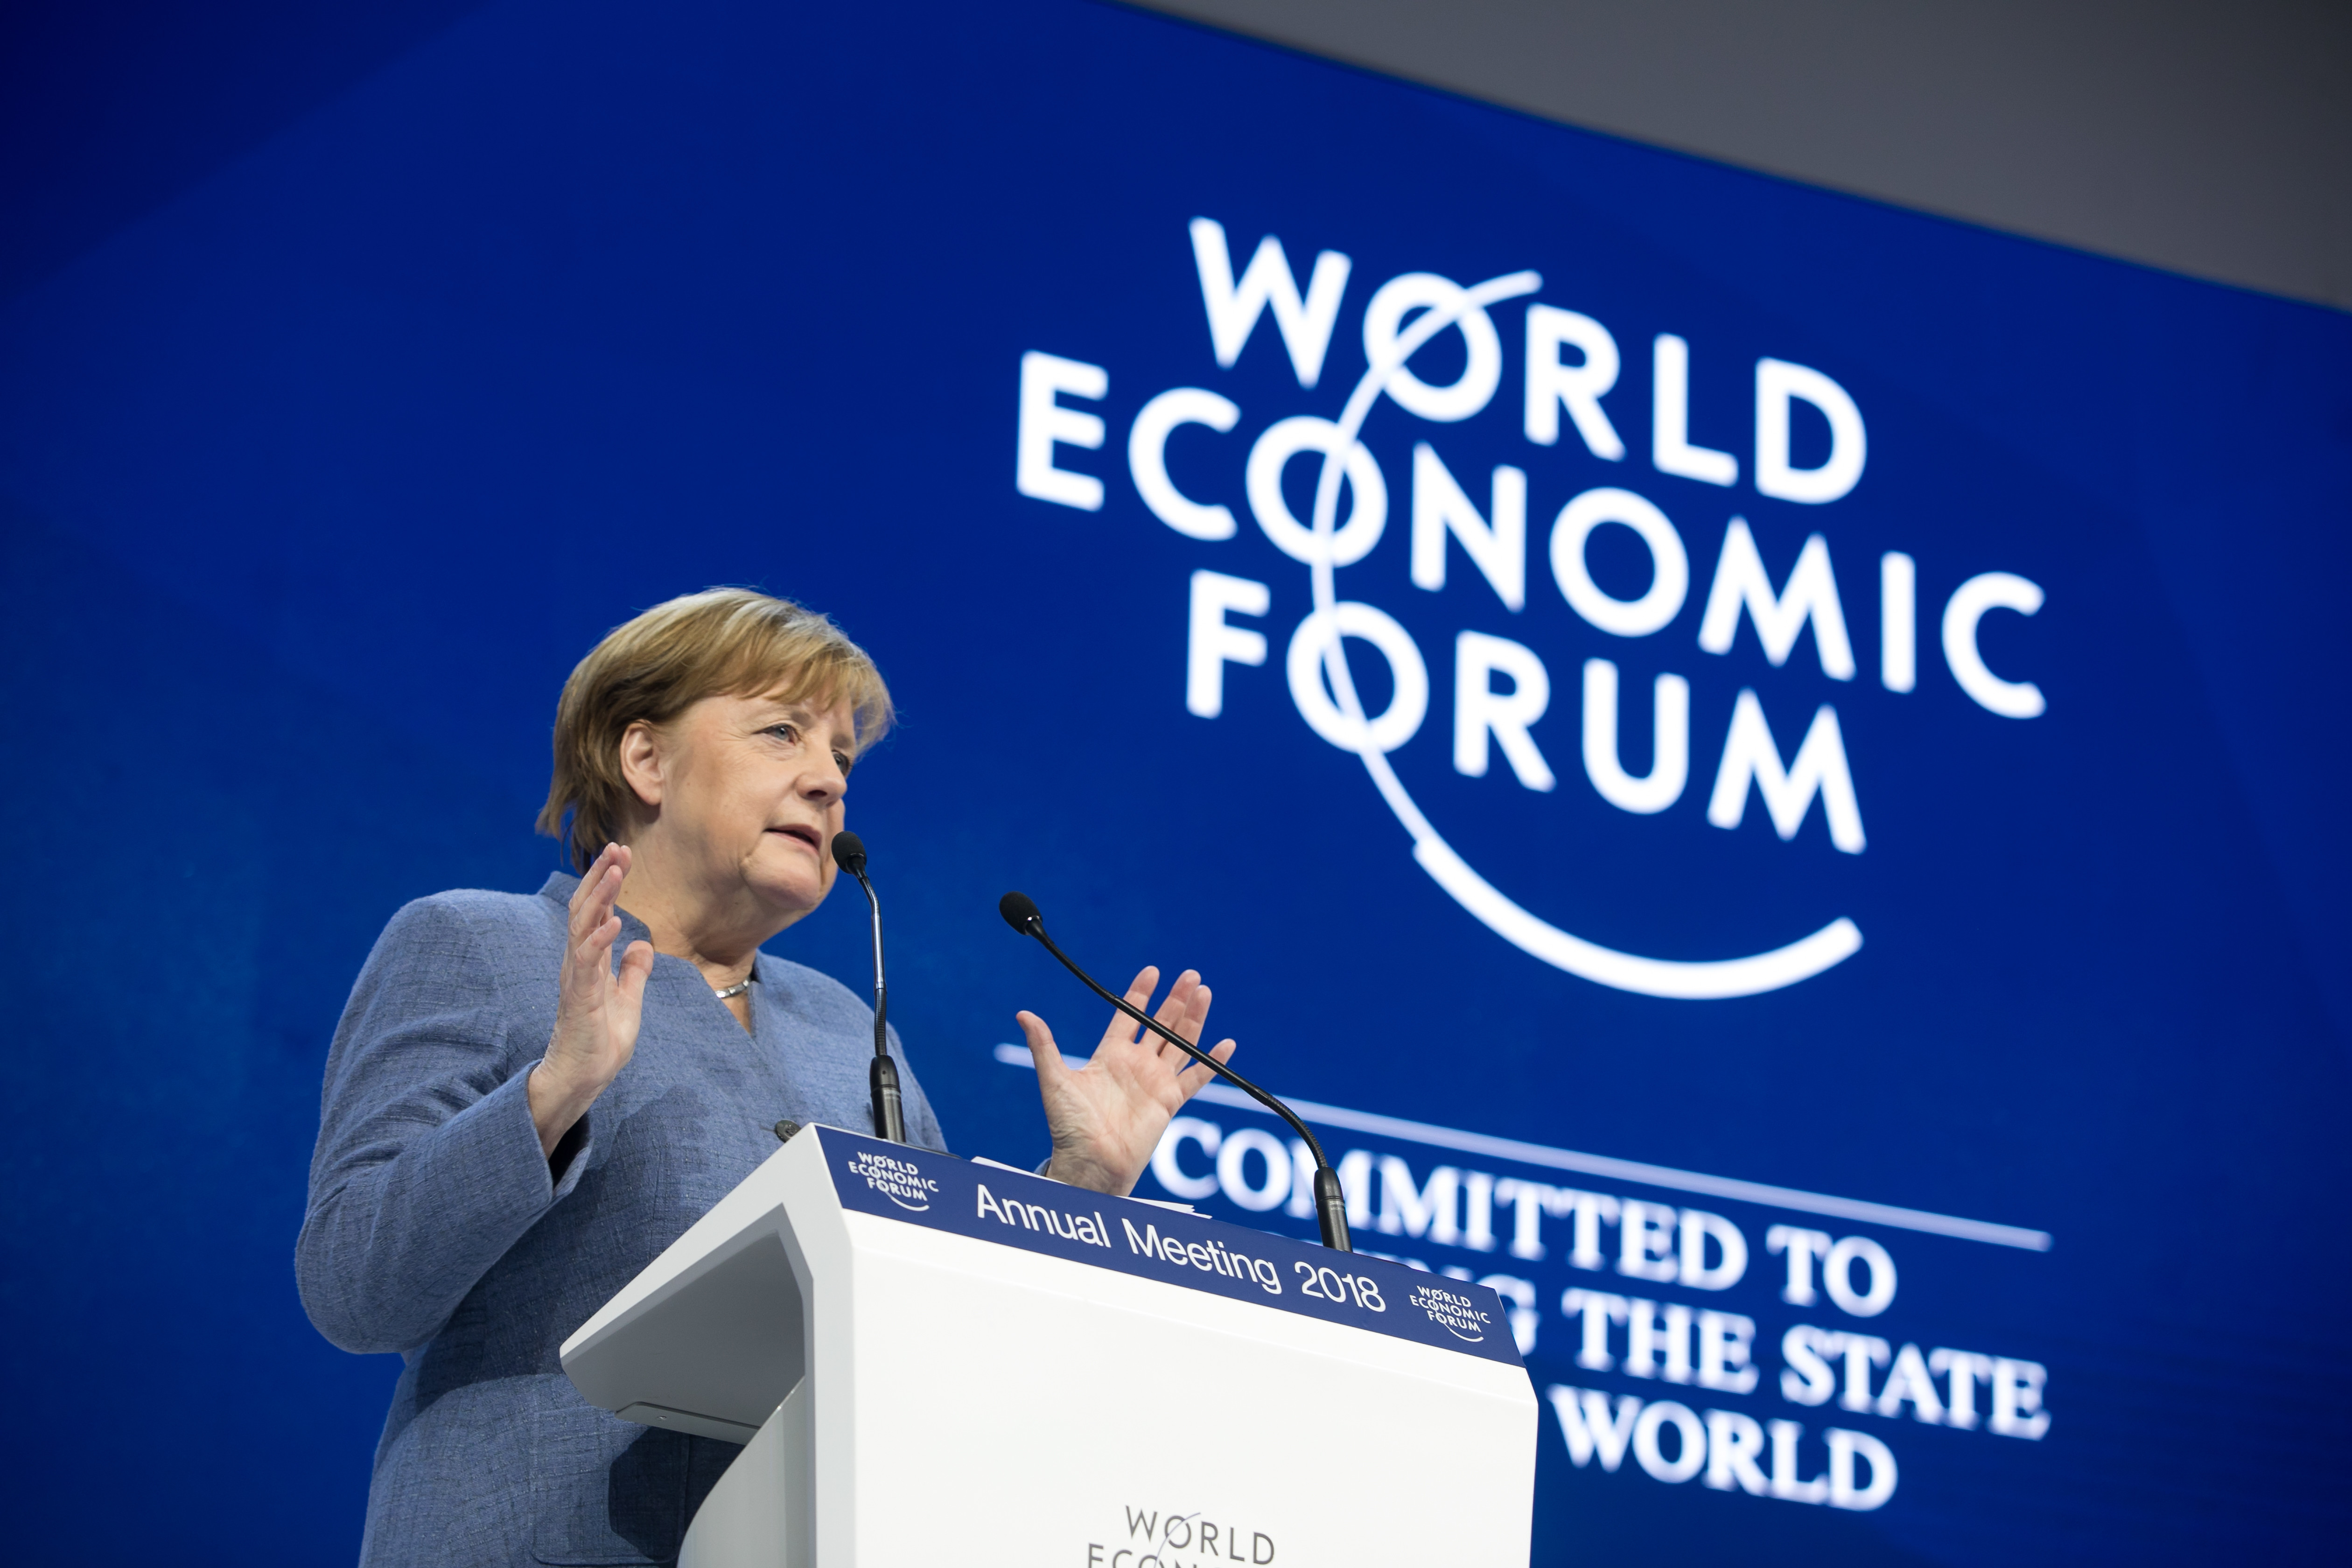 Angela Merkel, Federal Chancellor of Germany speaking during the session Special Address by Angela Merkel, Chancellor of Germany, at the Annual Meeting 2018 of the World Economic Forum in Davos, January 24, 2018. Copyright by World Economic Forum / Ciaran McCrickard